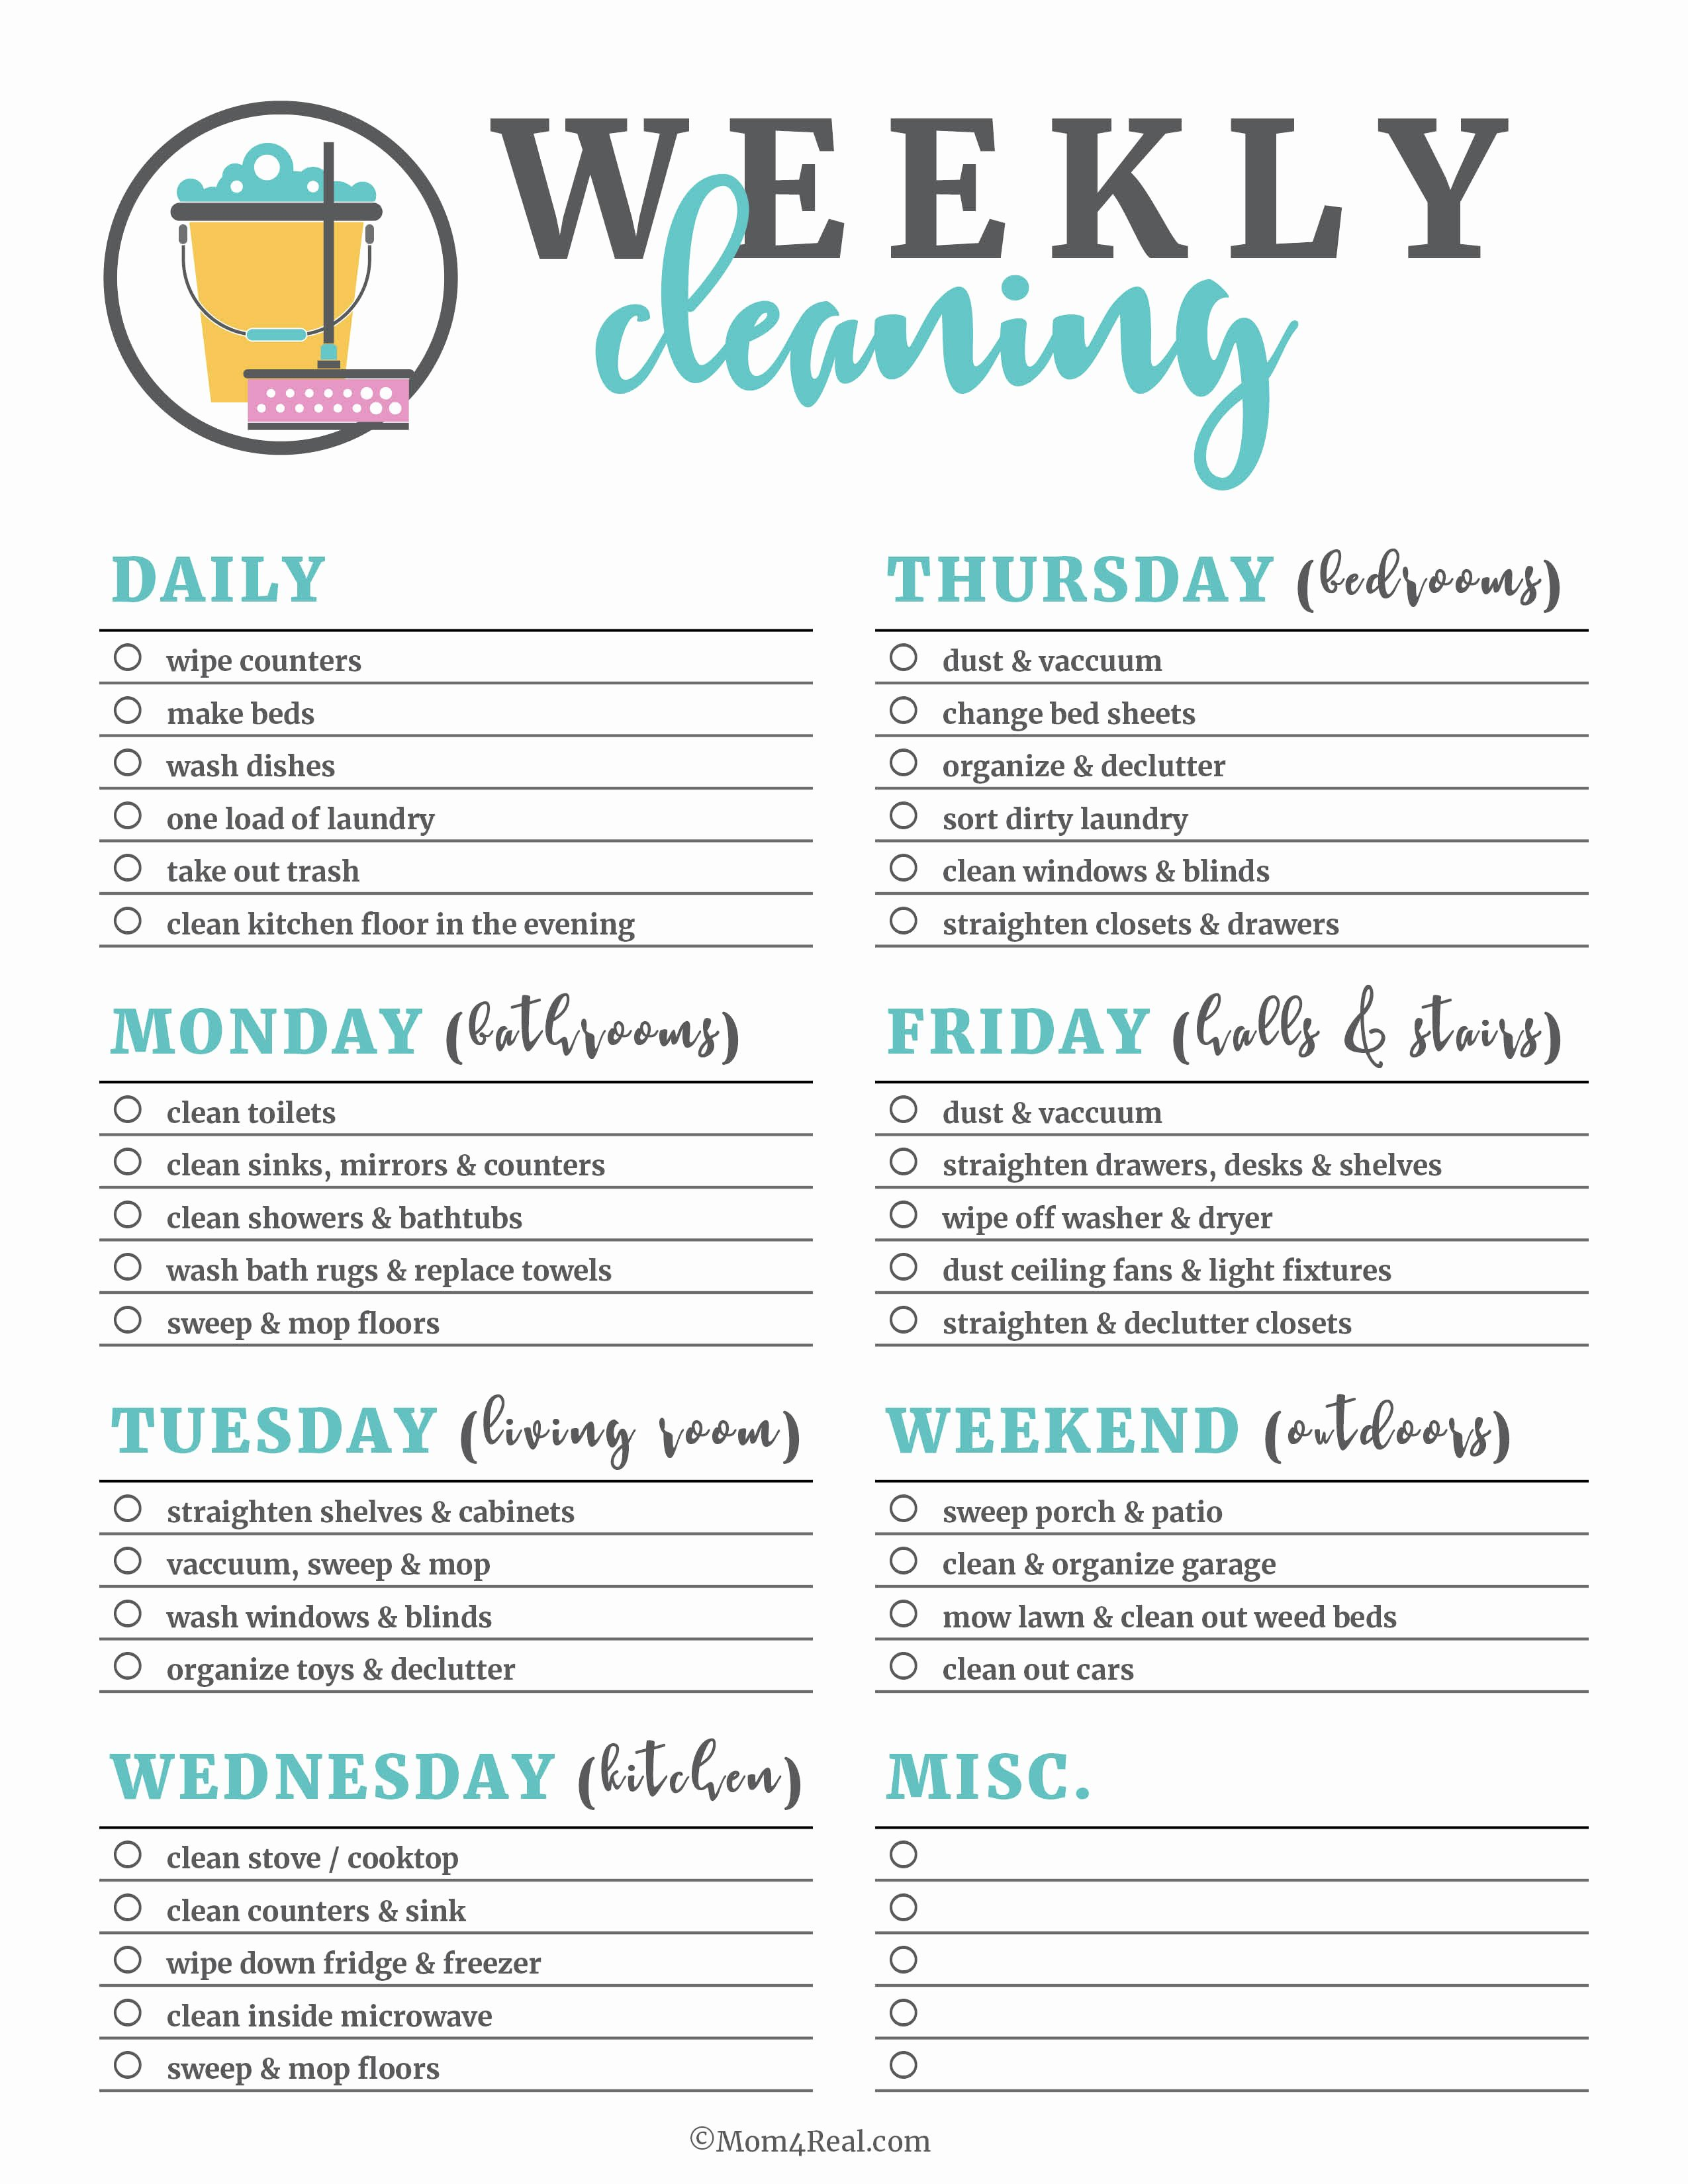 Cleaning Service Checklist Template Unique Printable Cleaning Checklists for Daily Weekly and